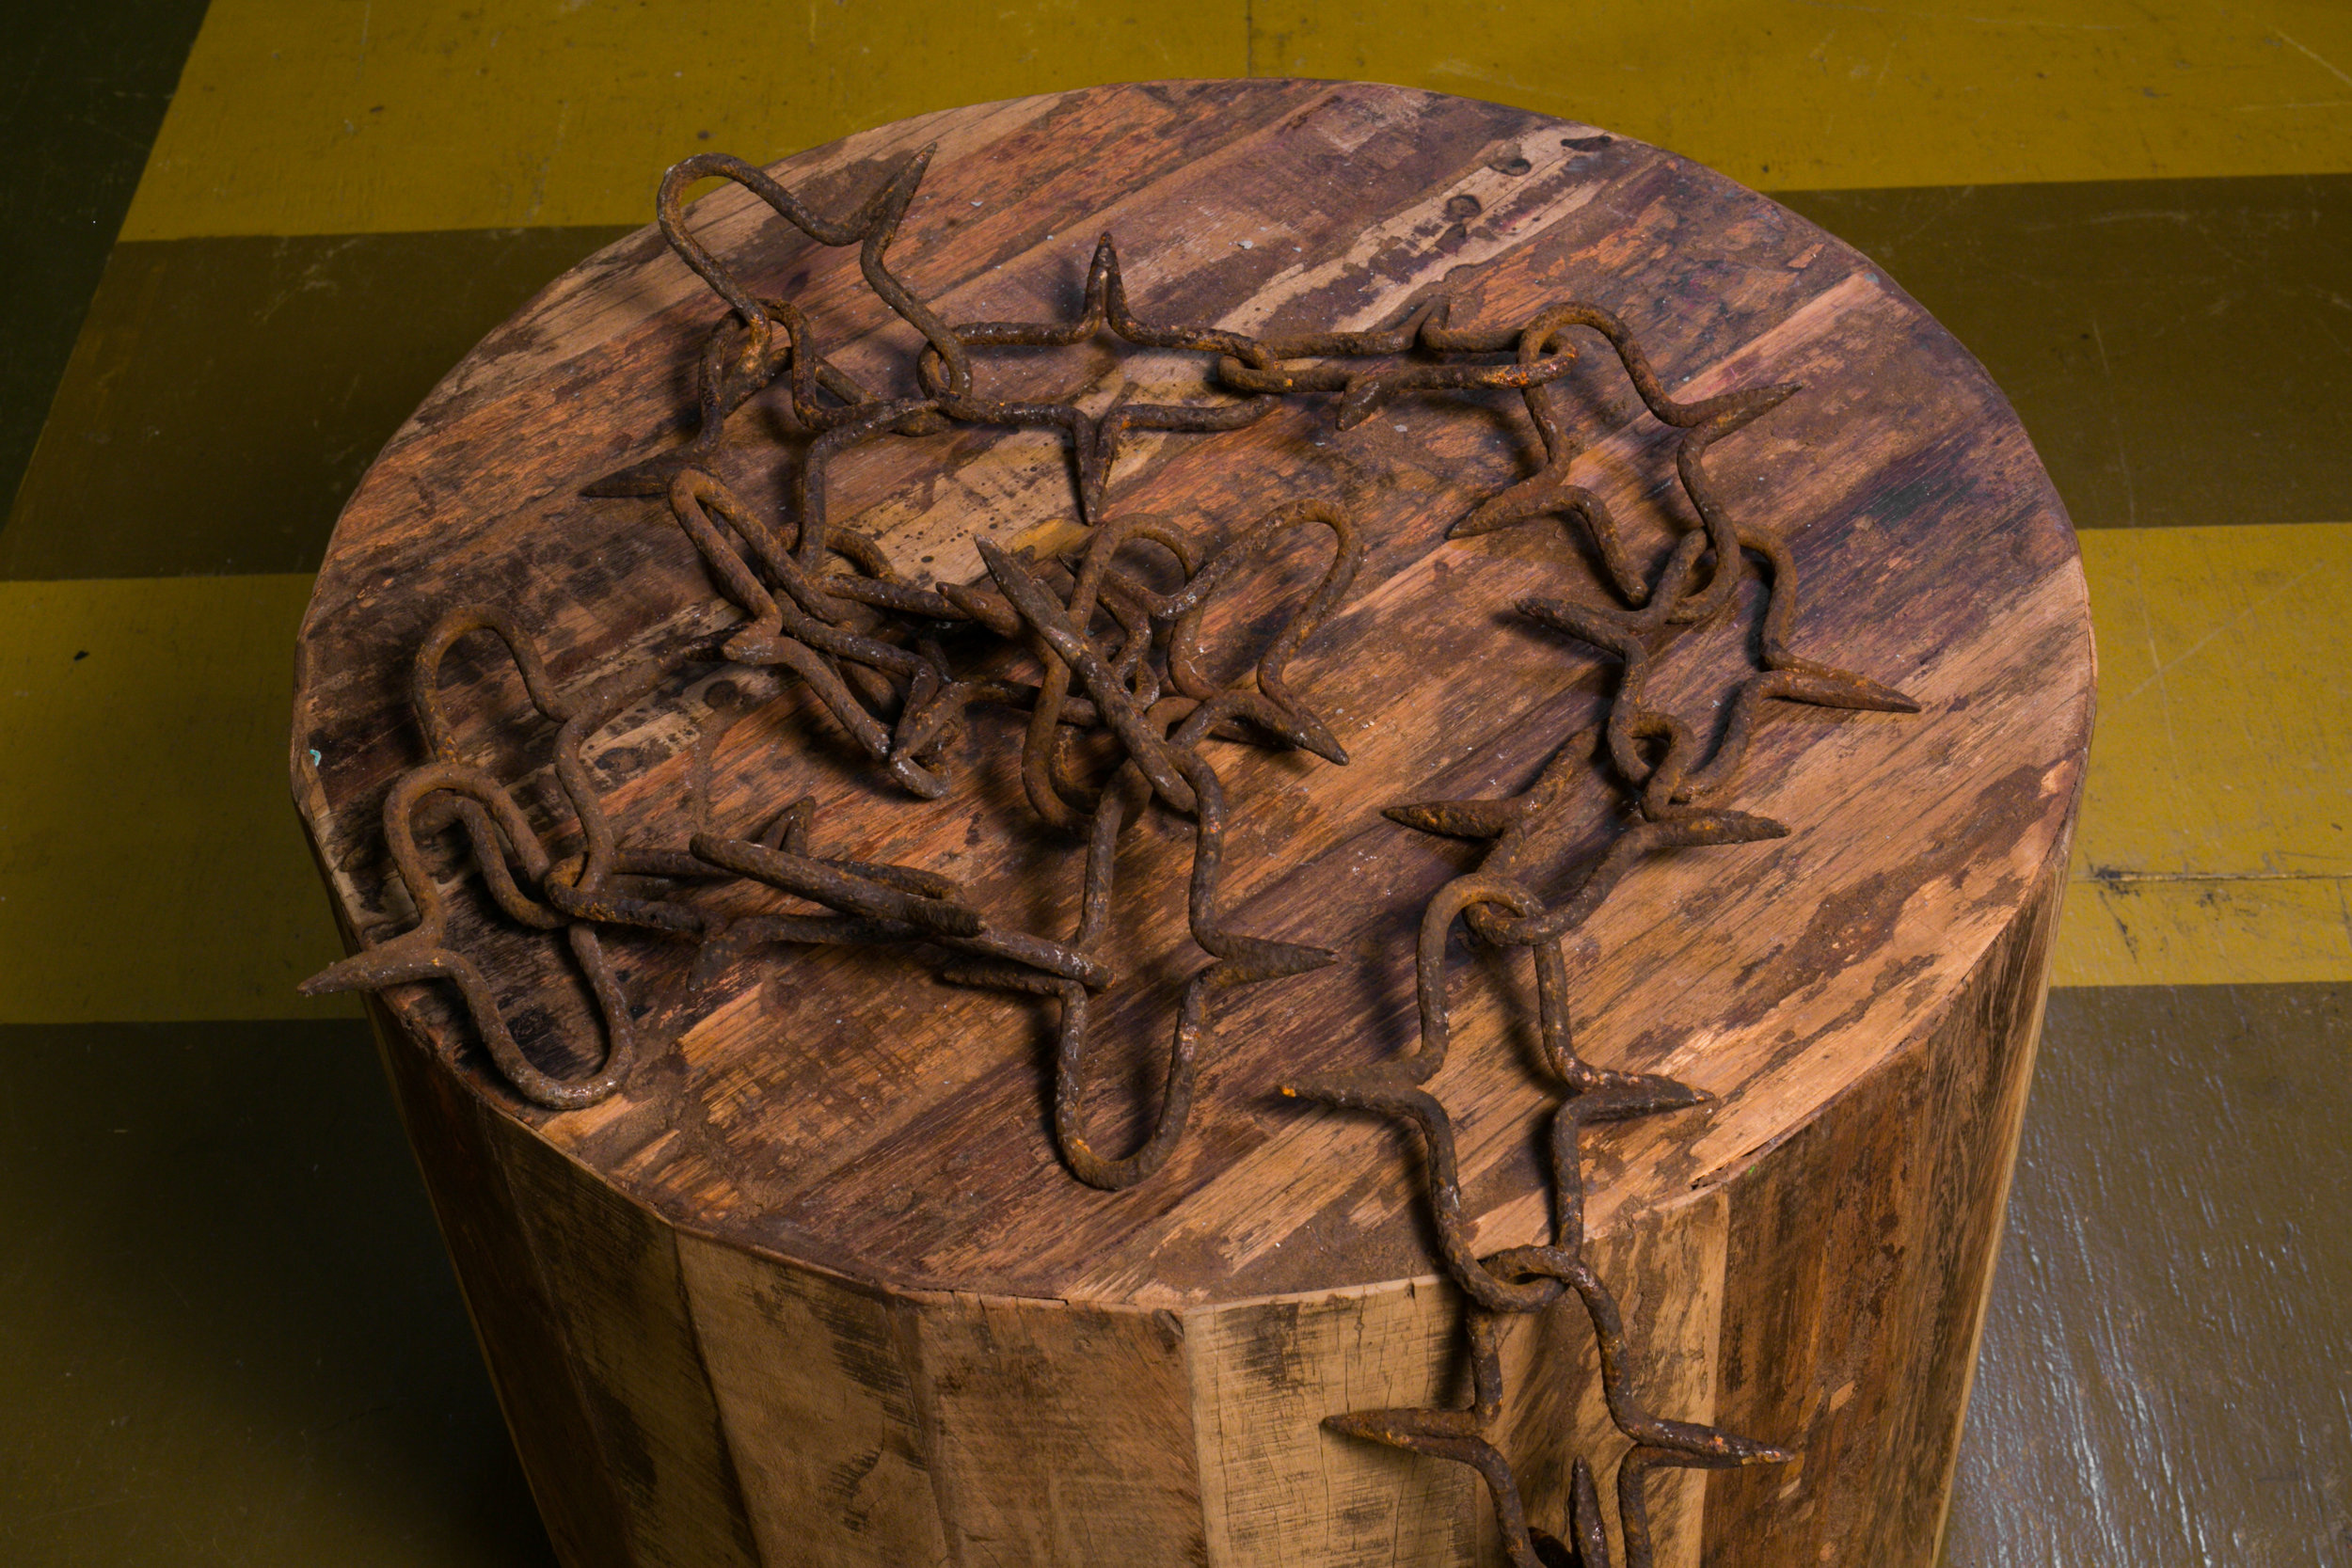 Antique Hand-Made Iron Chain